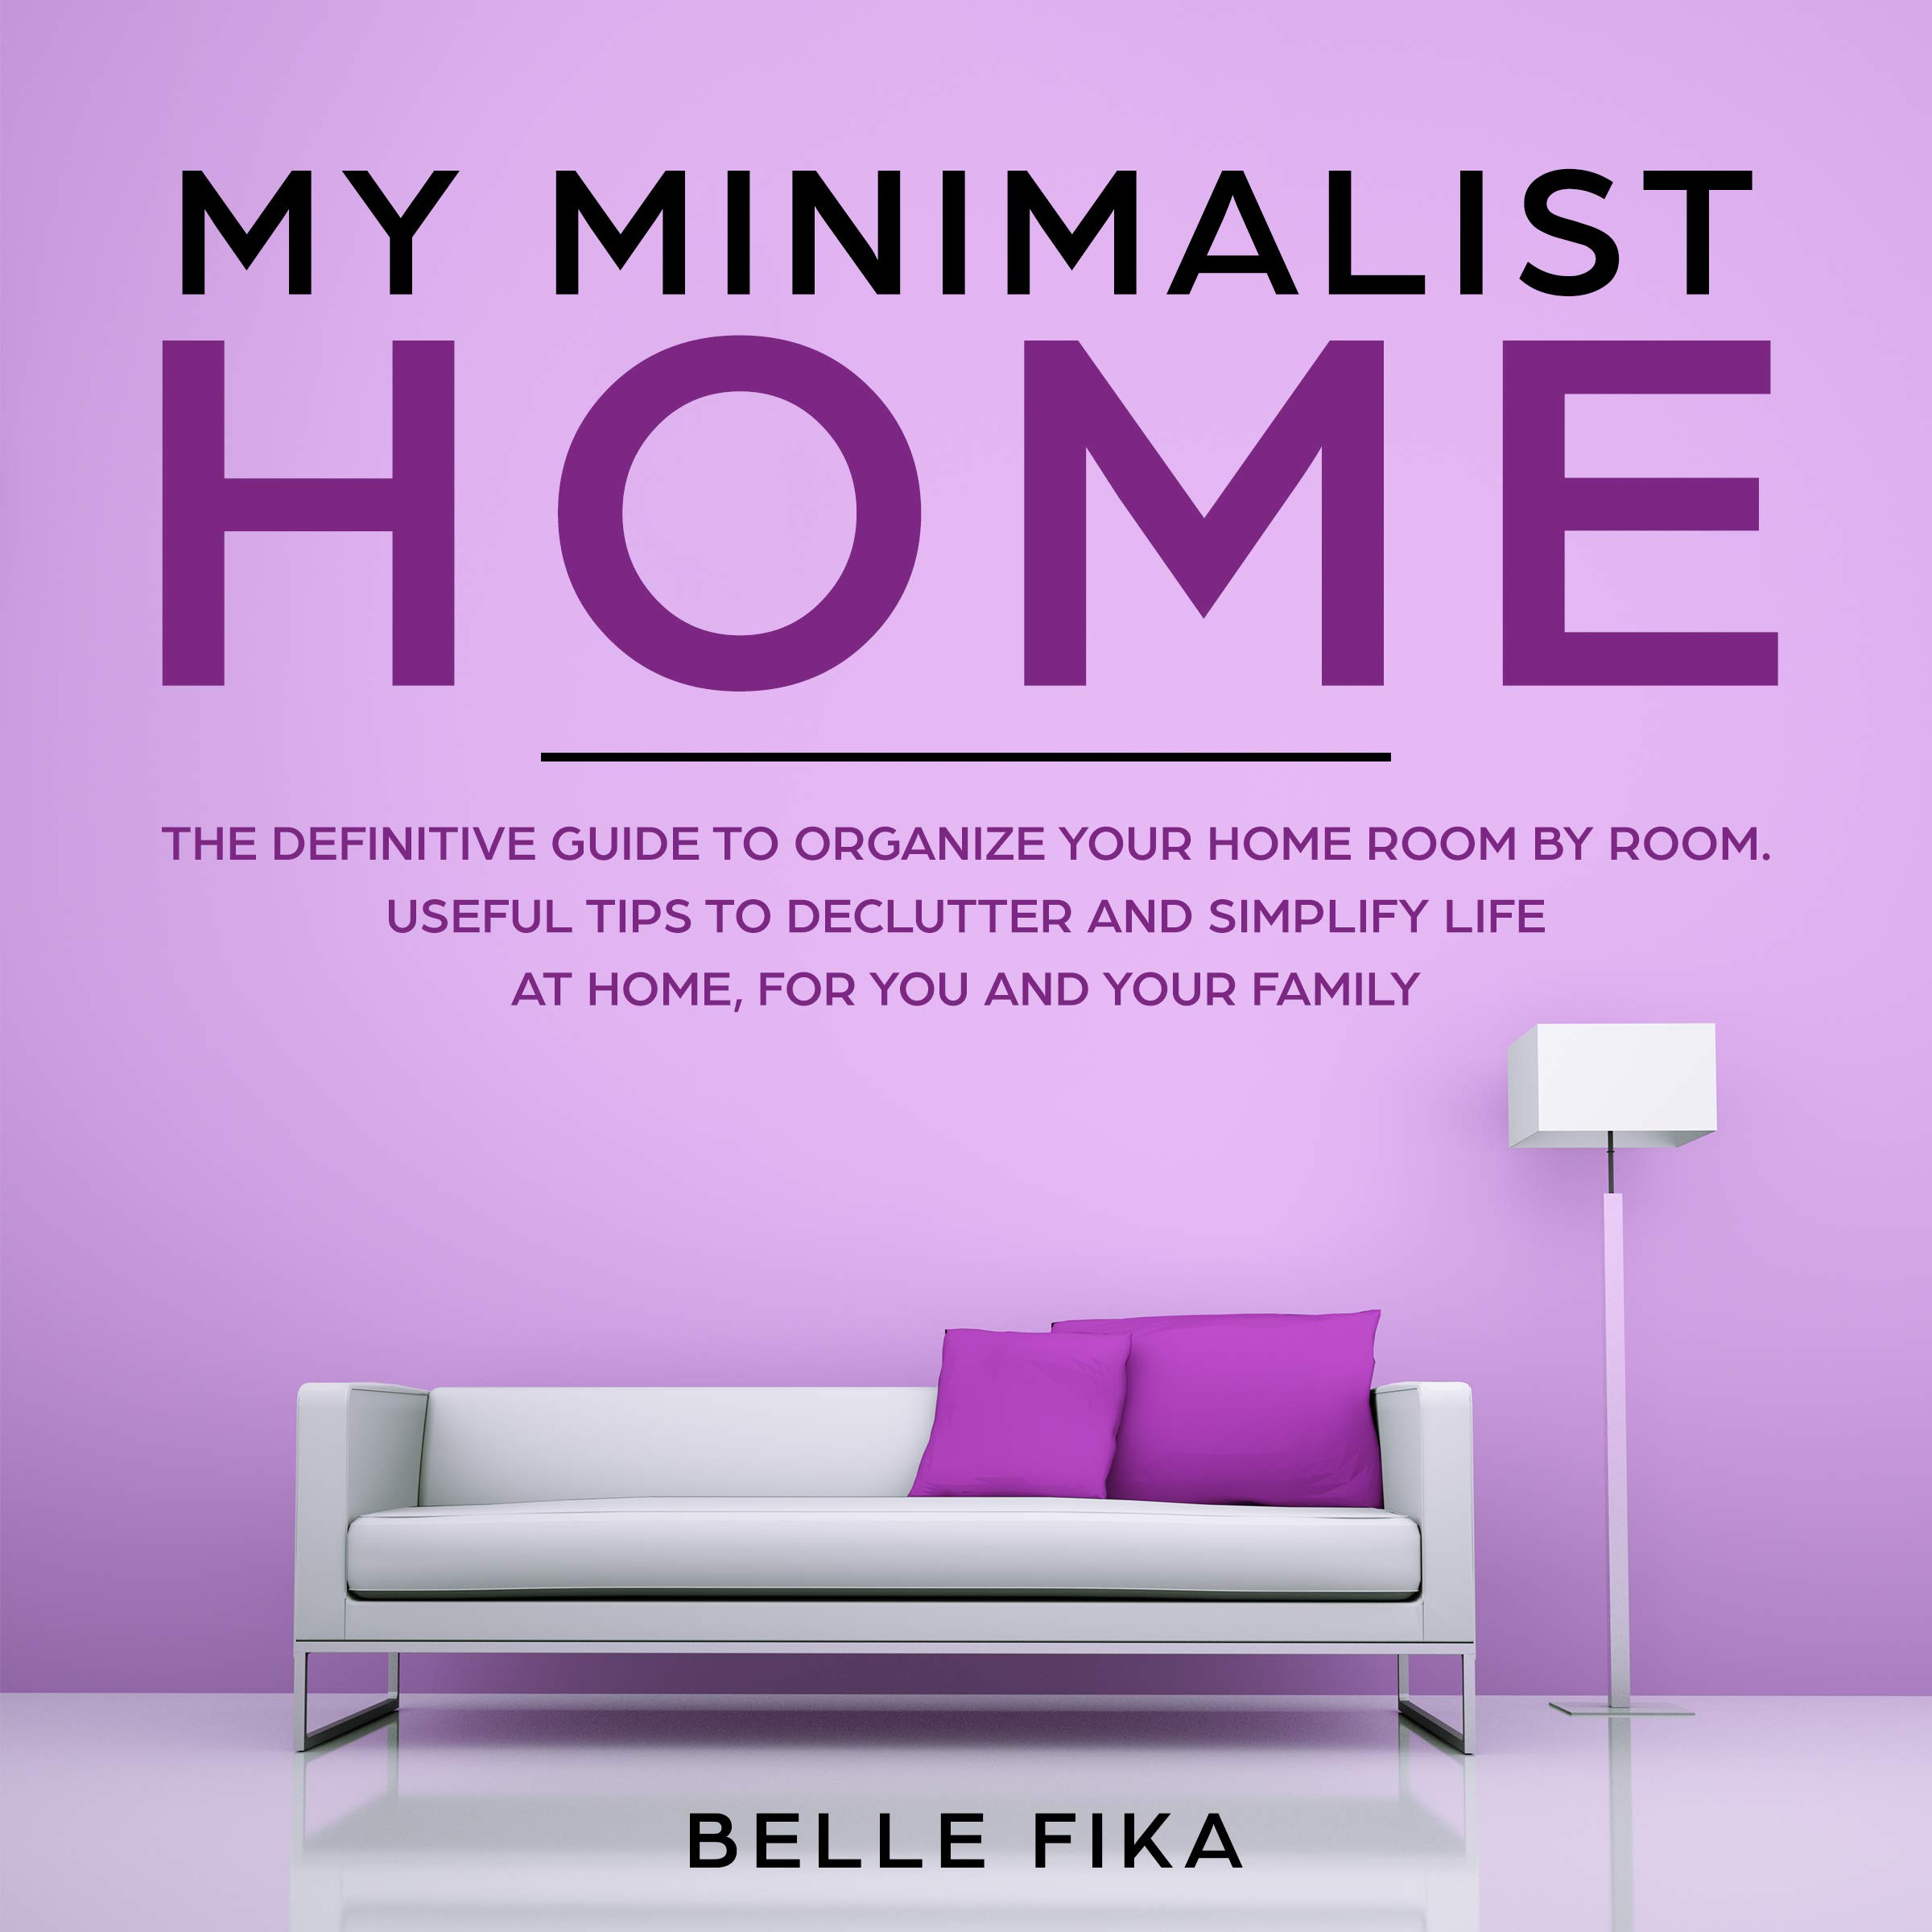 MY MINIMALIST HOME: THE DEFINITIVE GUIDE TO ORGANIZE YOUR HOME ROOM BY ROOM. USEFUL TIPS TO DECLUTTER AND SIMPLIFY LIFE AT HOME, FOR YOU AND YOUR FAMILY